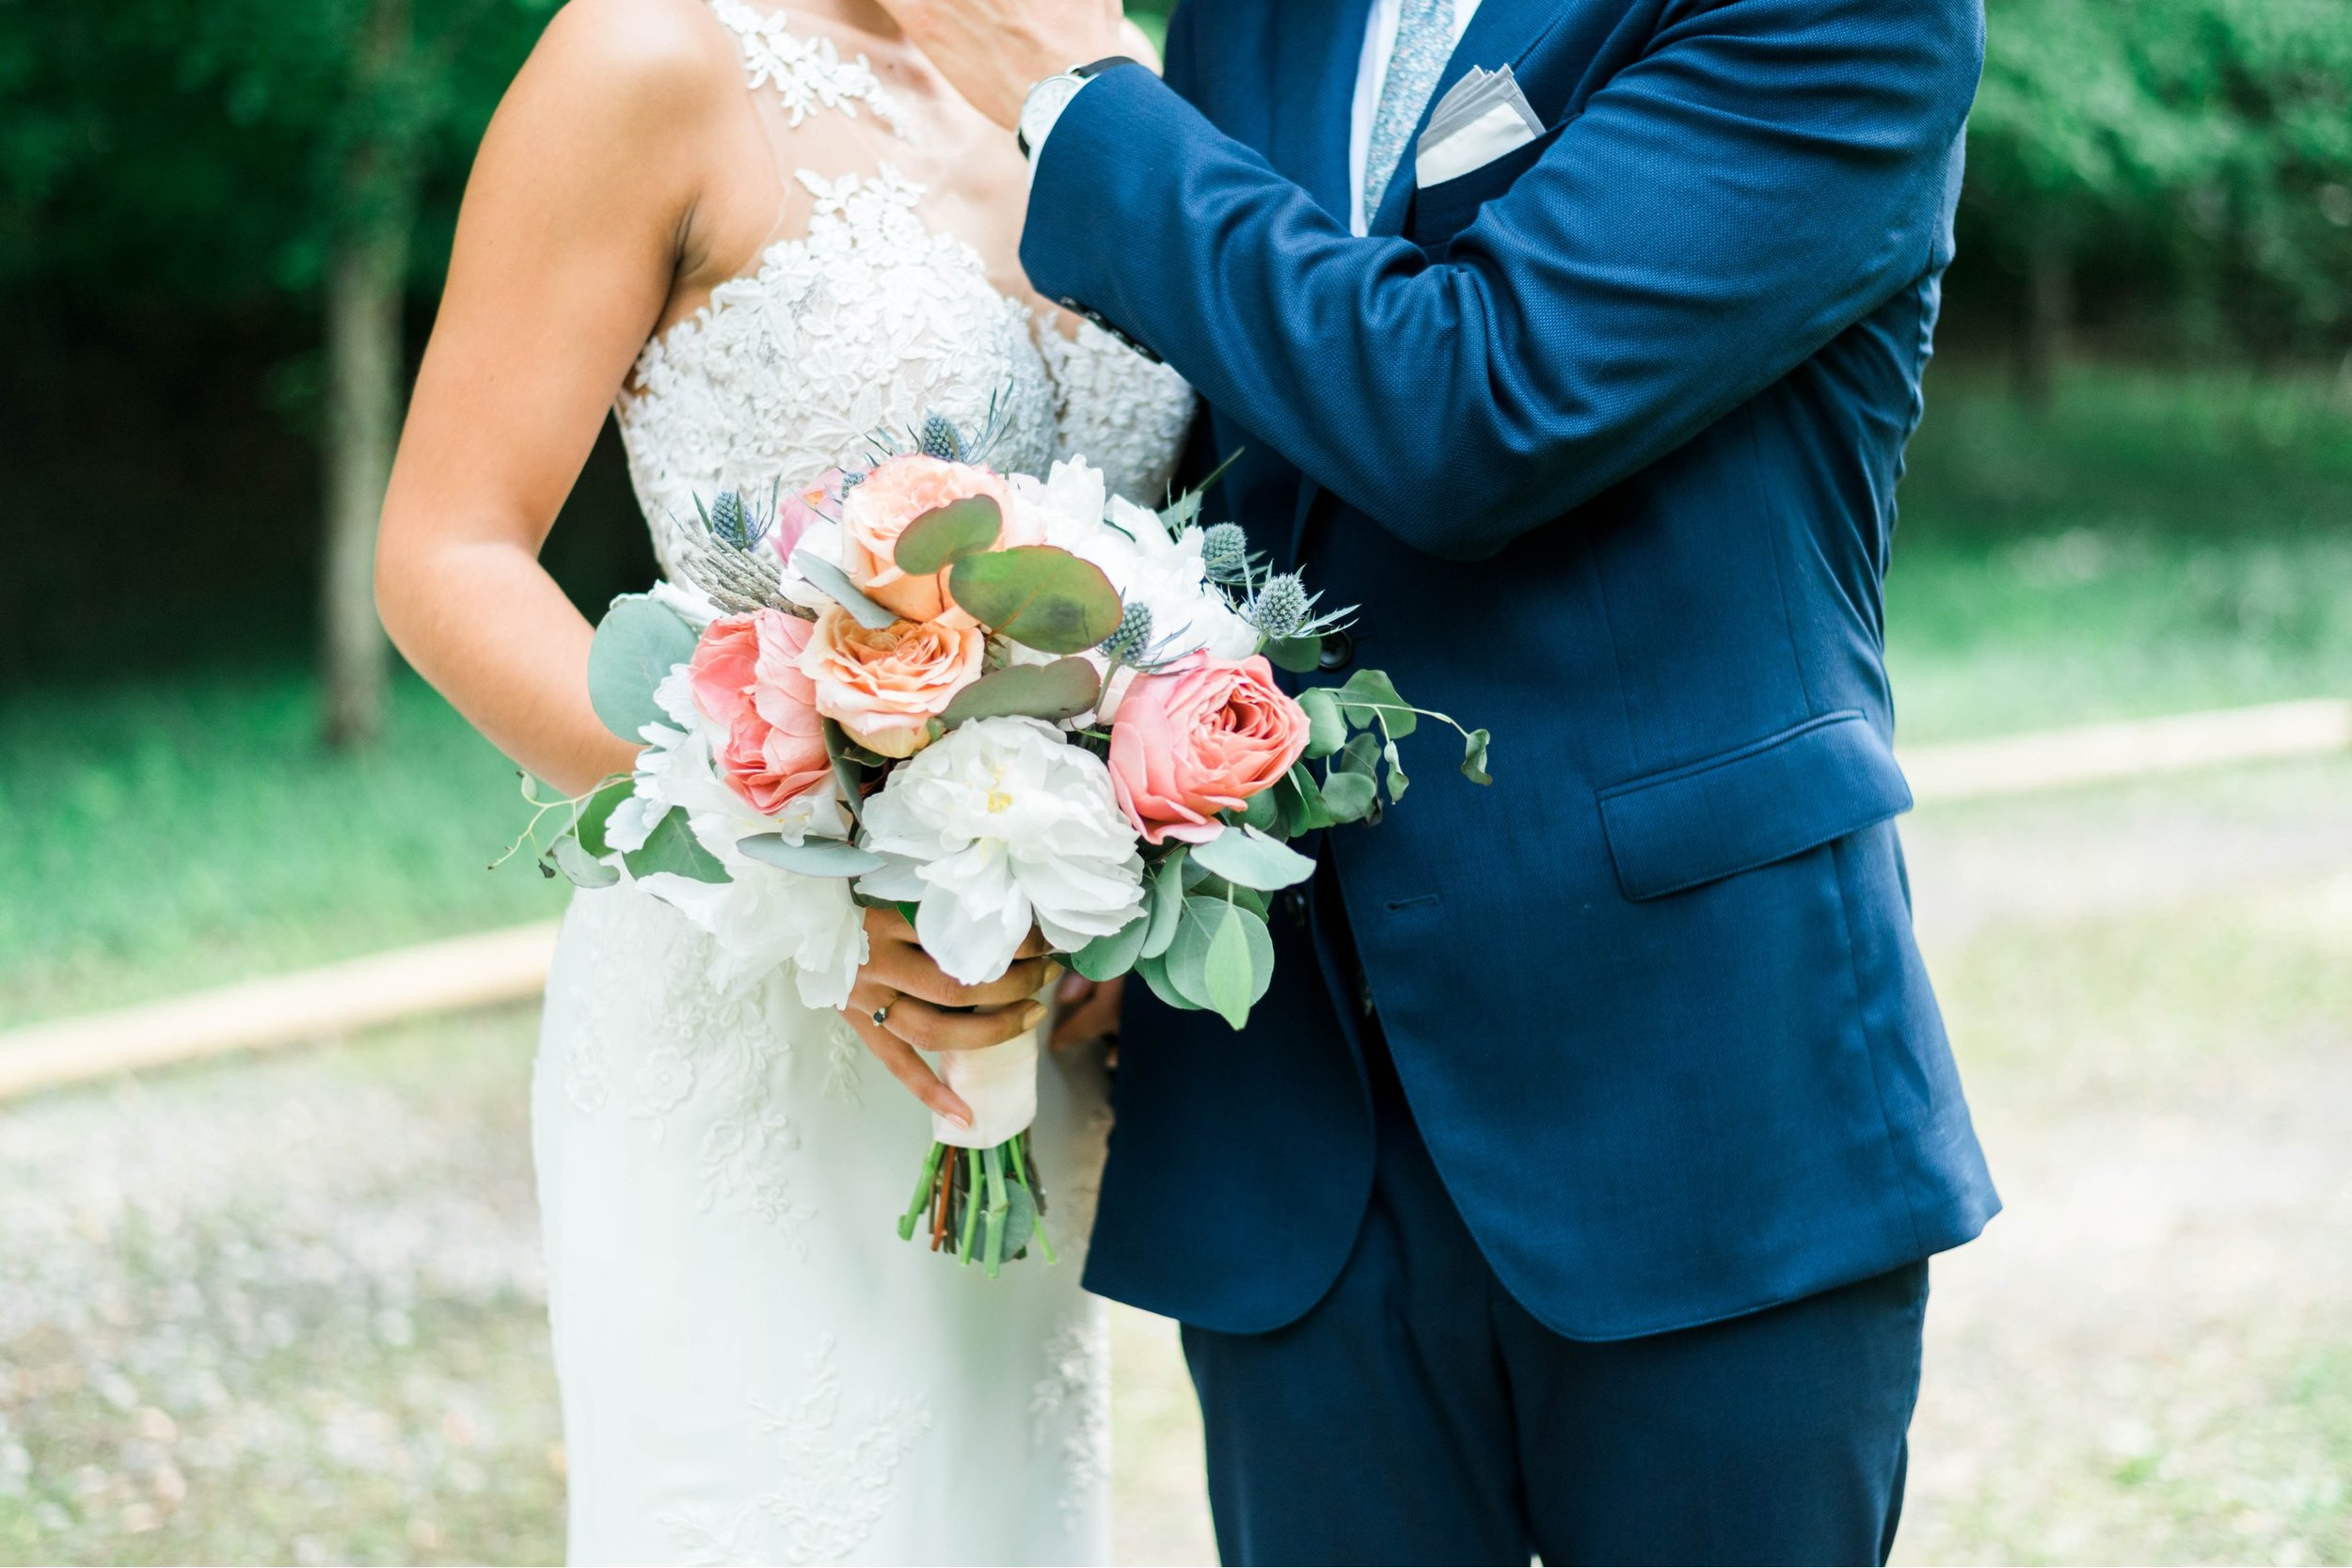 Williamsburgvawedding_backyardwedding_virginiaweddingphotographer_lynchburgweddingphotographer_PaulAliya 34.jpg